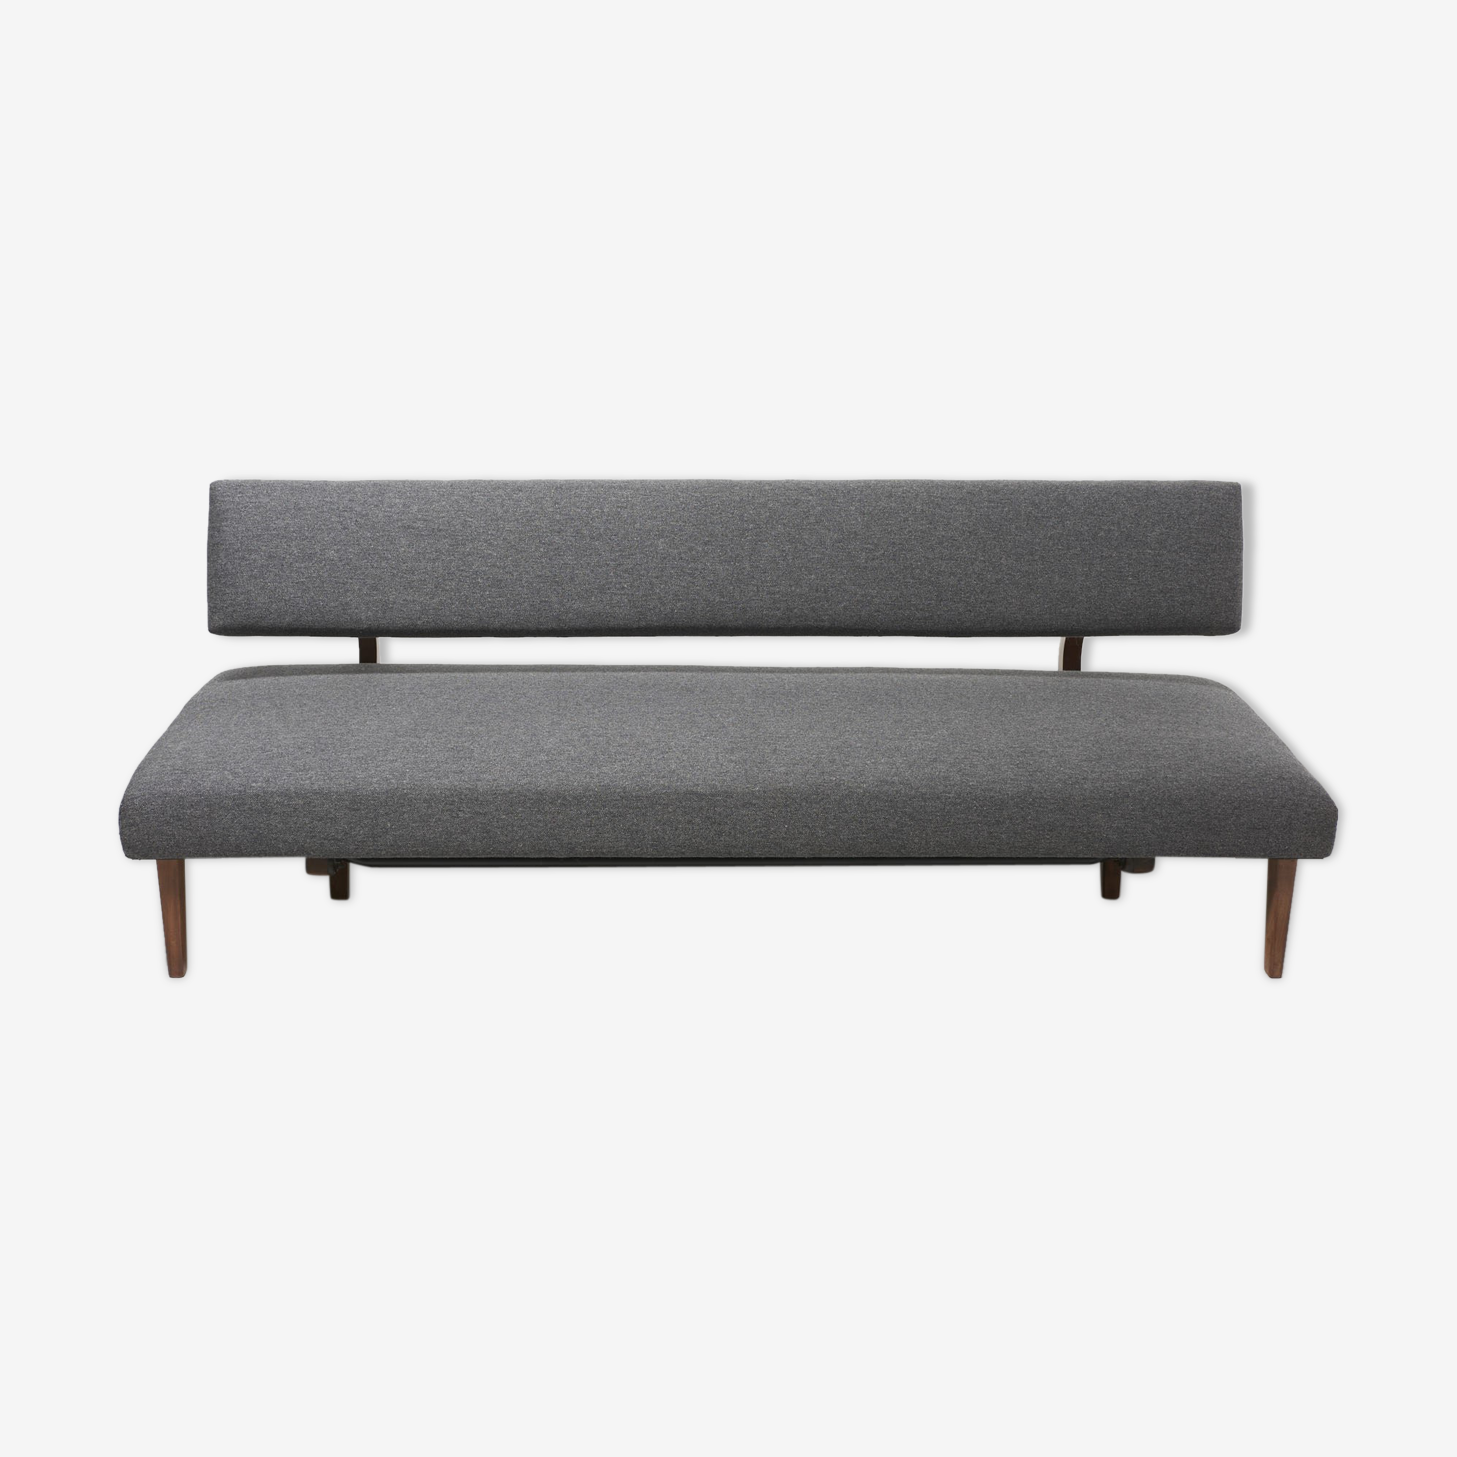 Daybed by Franz Hohn, 1959